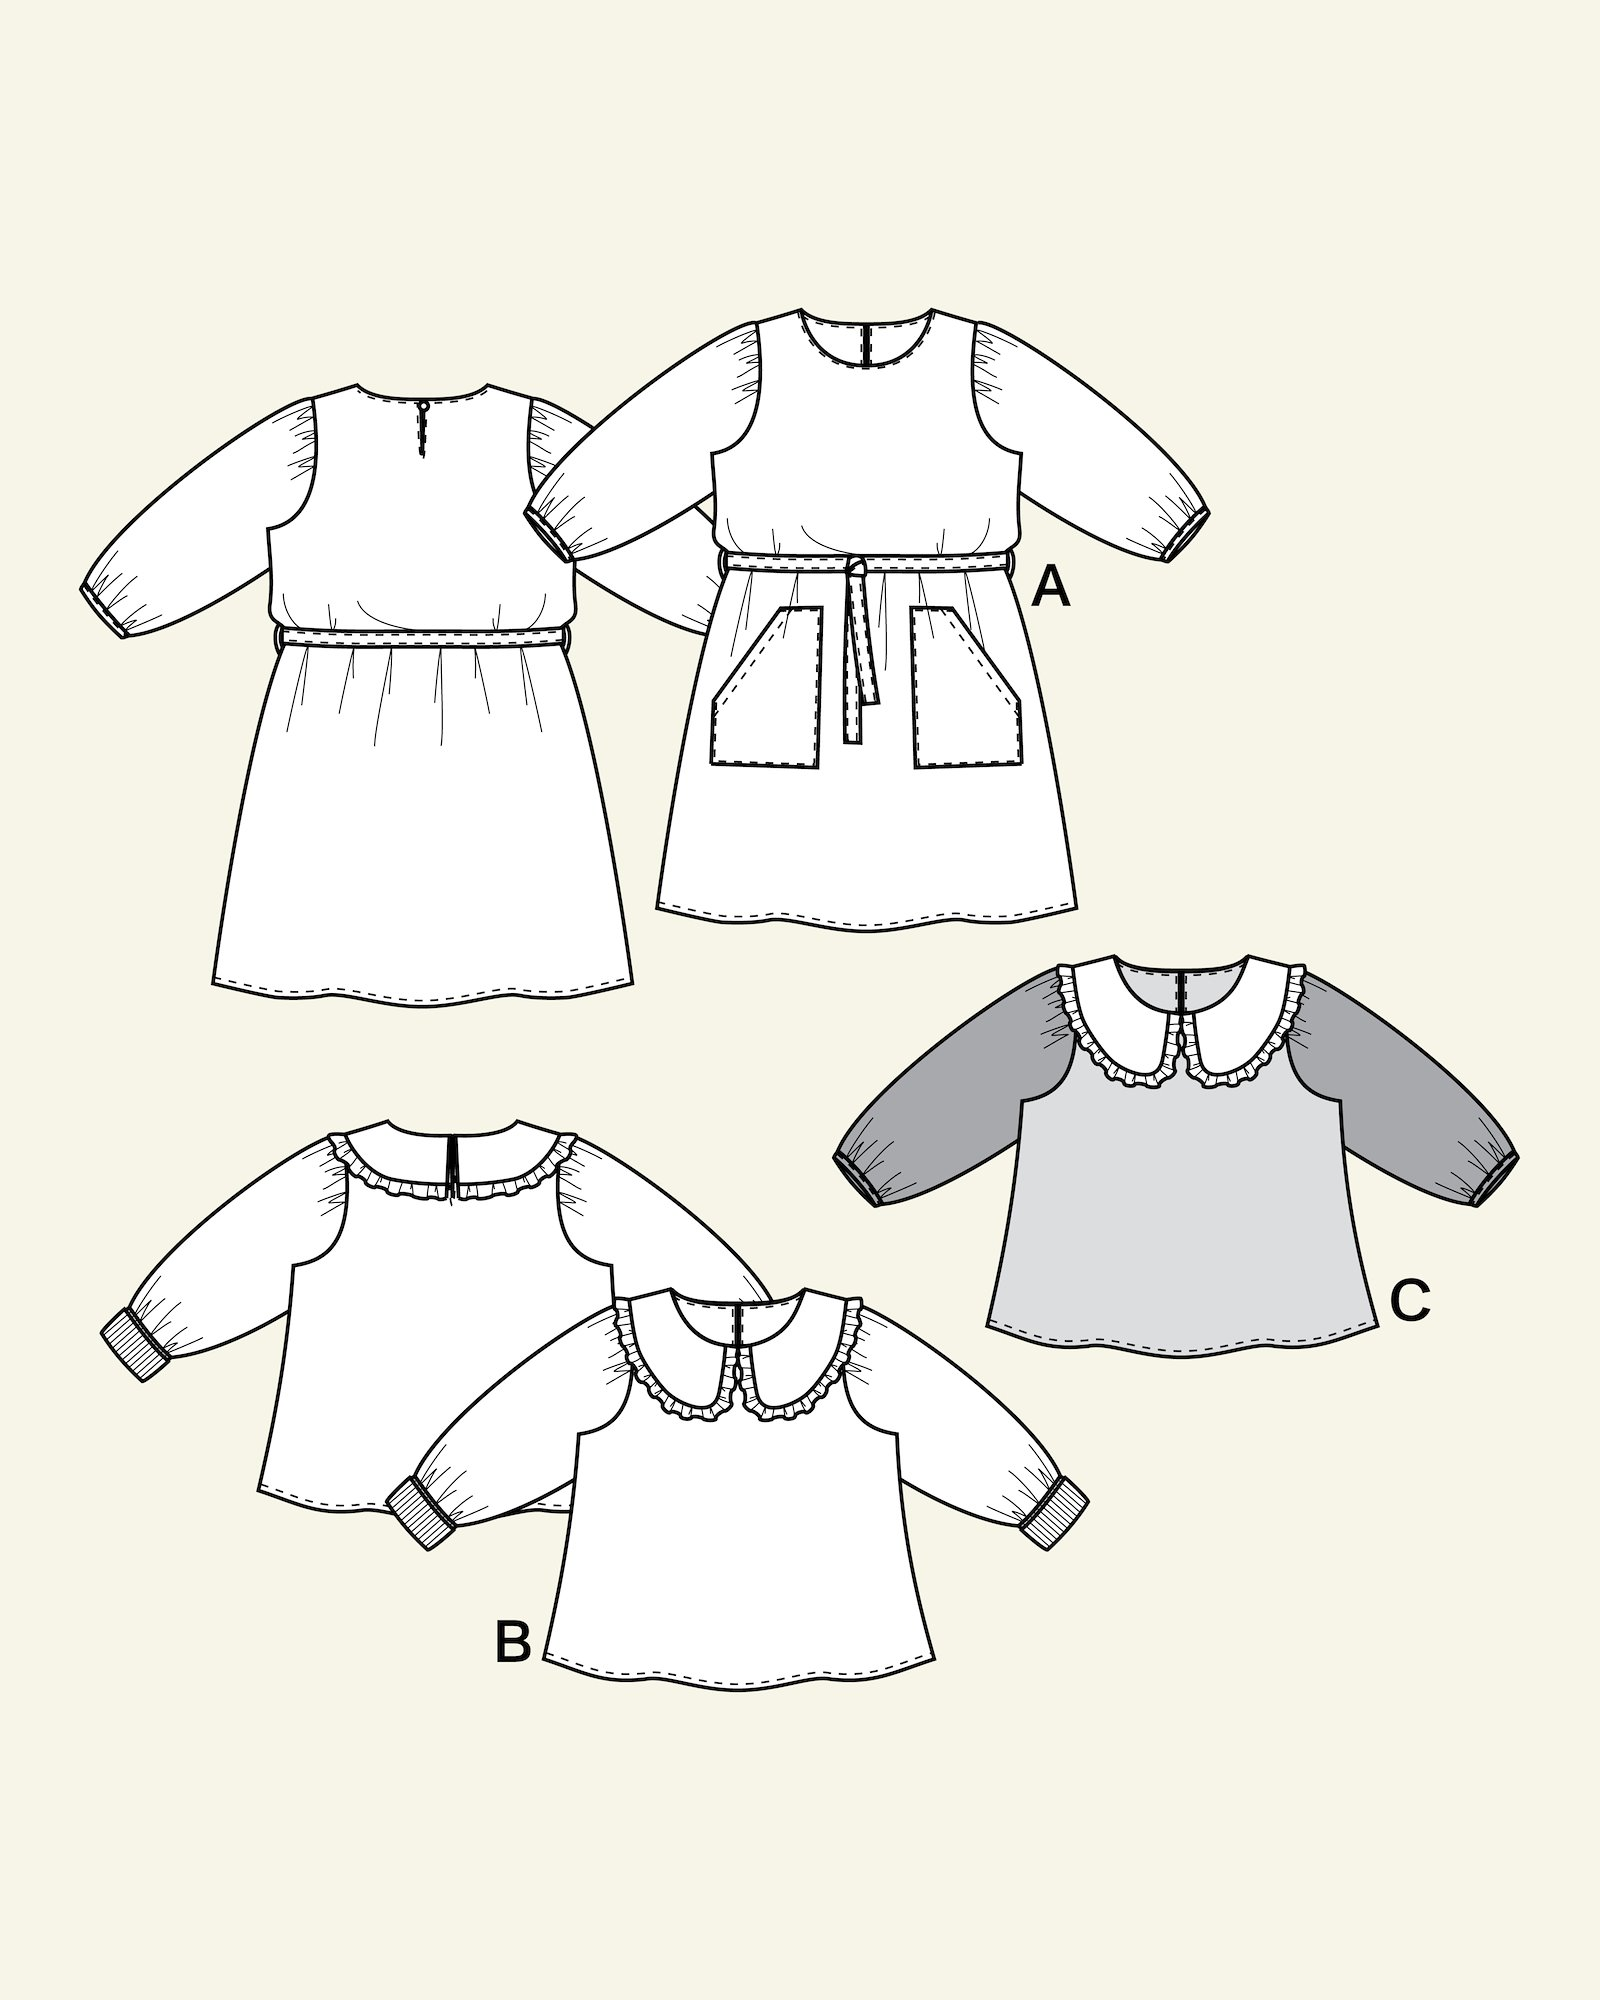 Dress and Blouse with puff sleeves